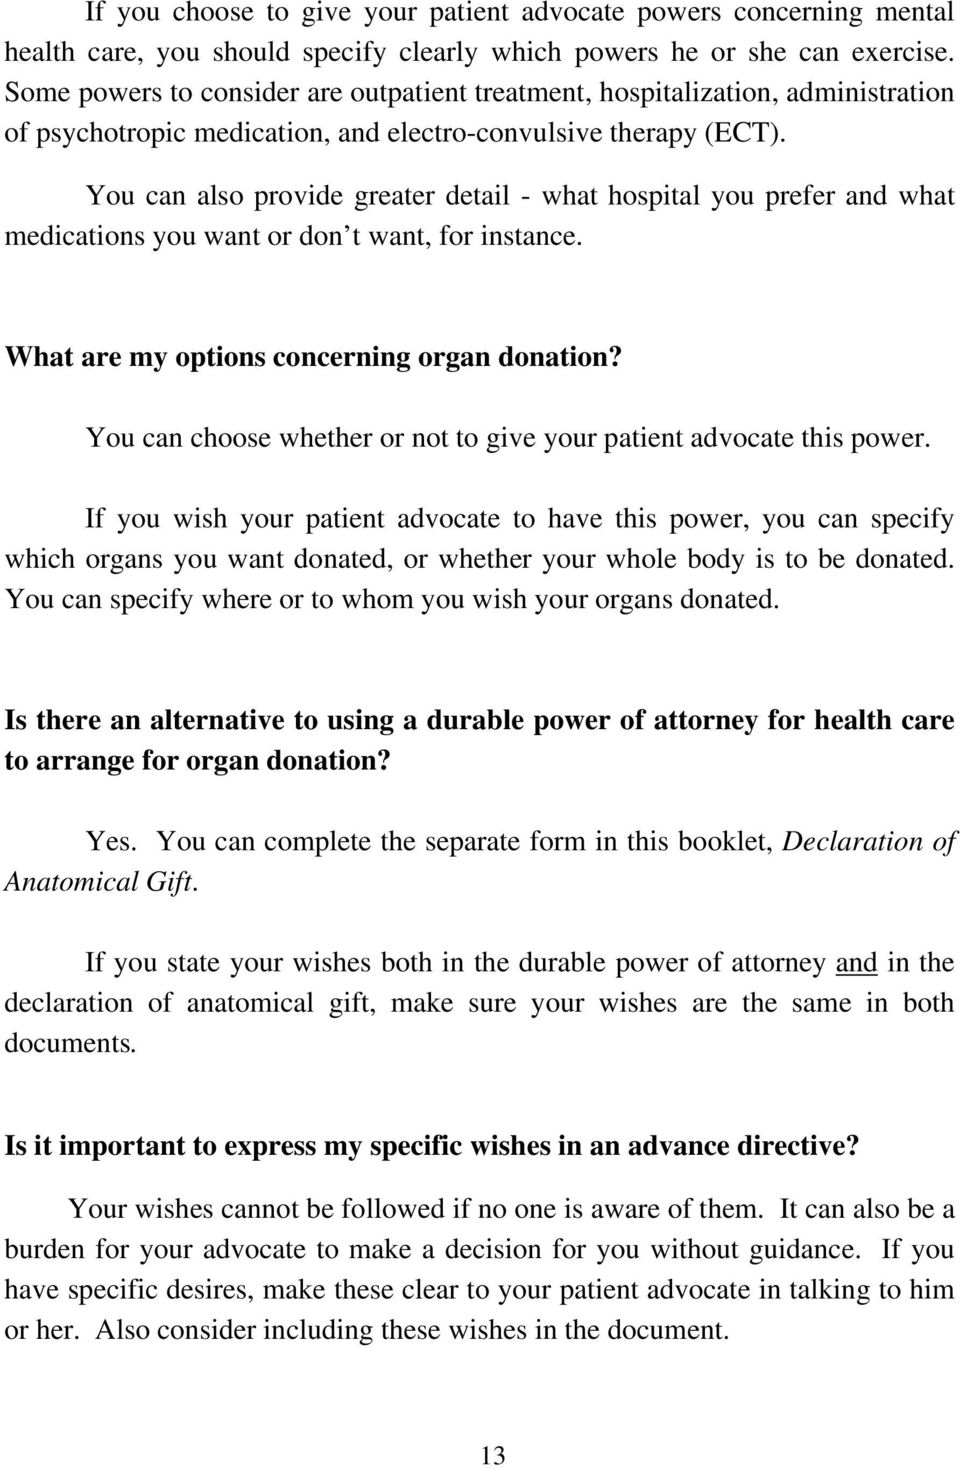 You can also provide greater detail - what hospital you prefer and what medications you want or don t want, for instance. What are my options concerning organ donation?